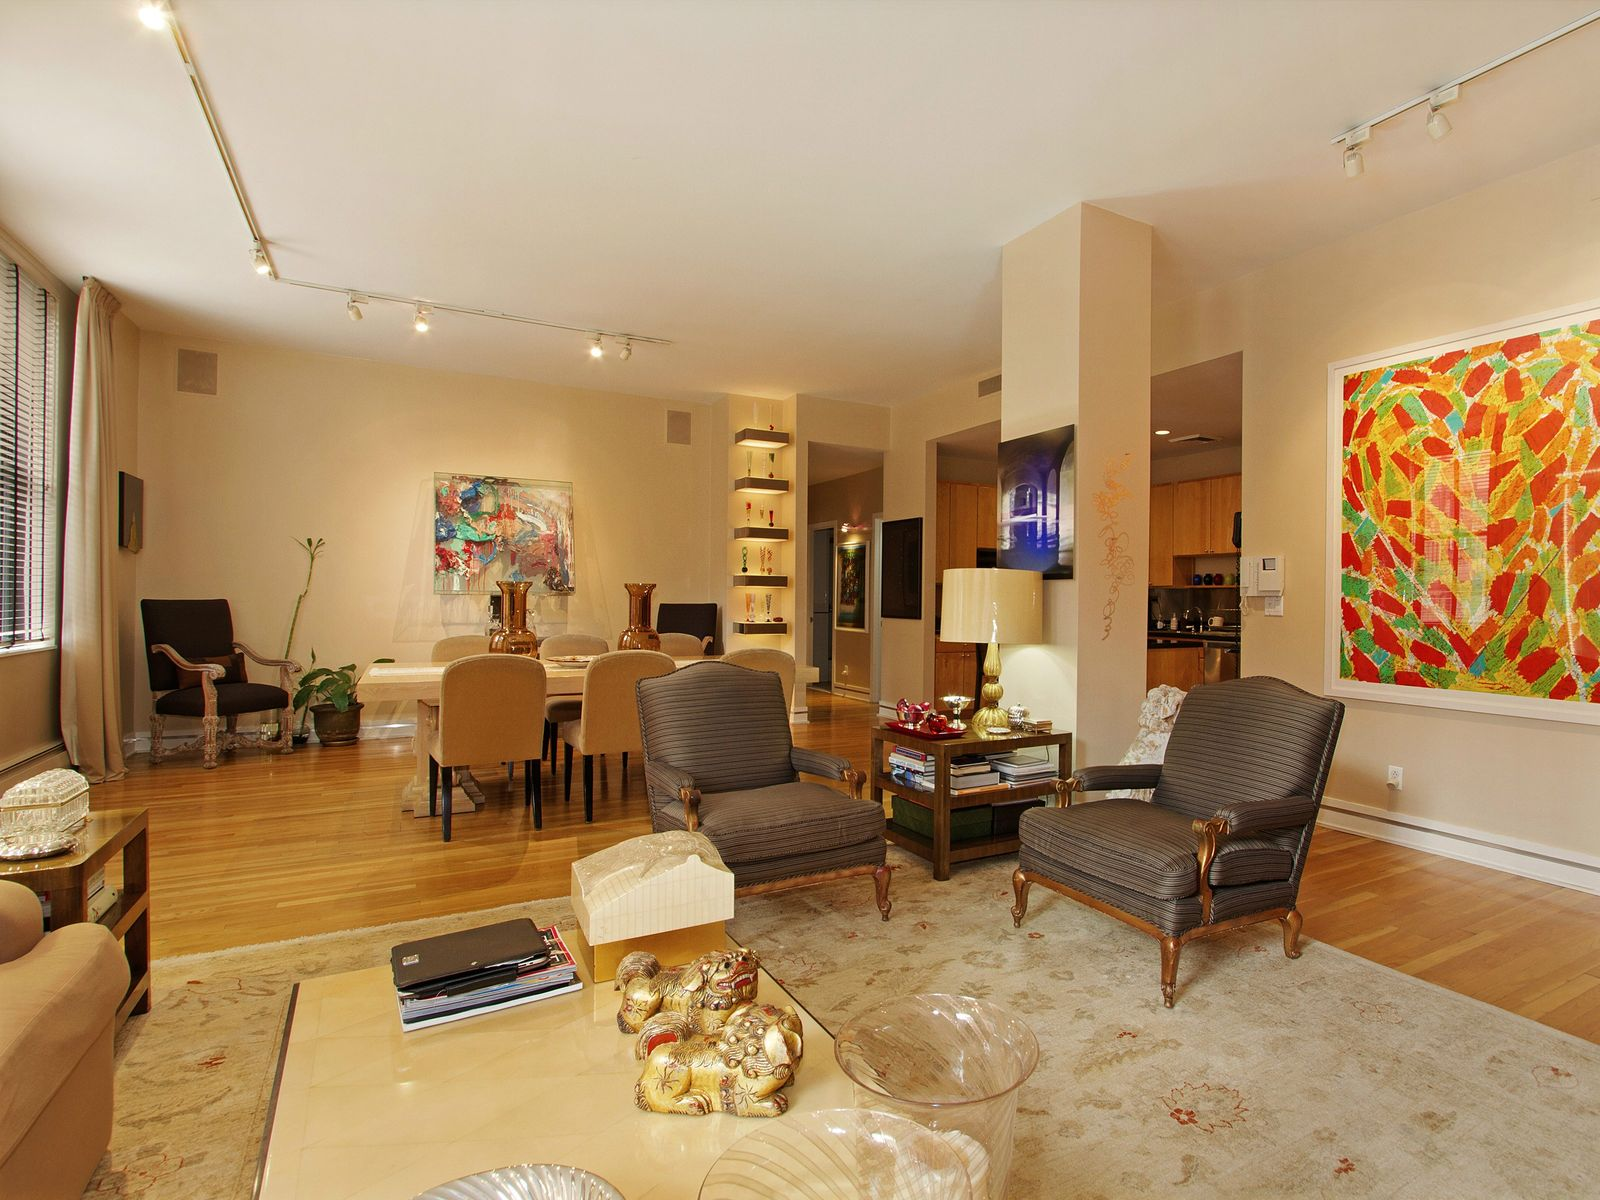 257 West 17th Street, Apartment 4D